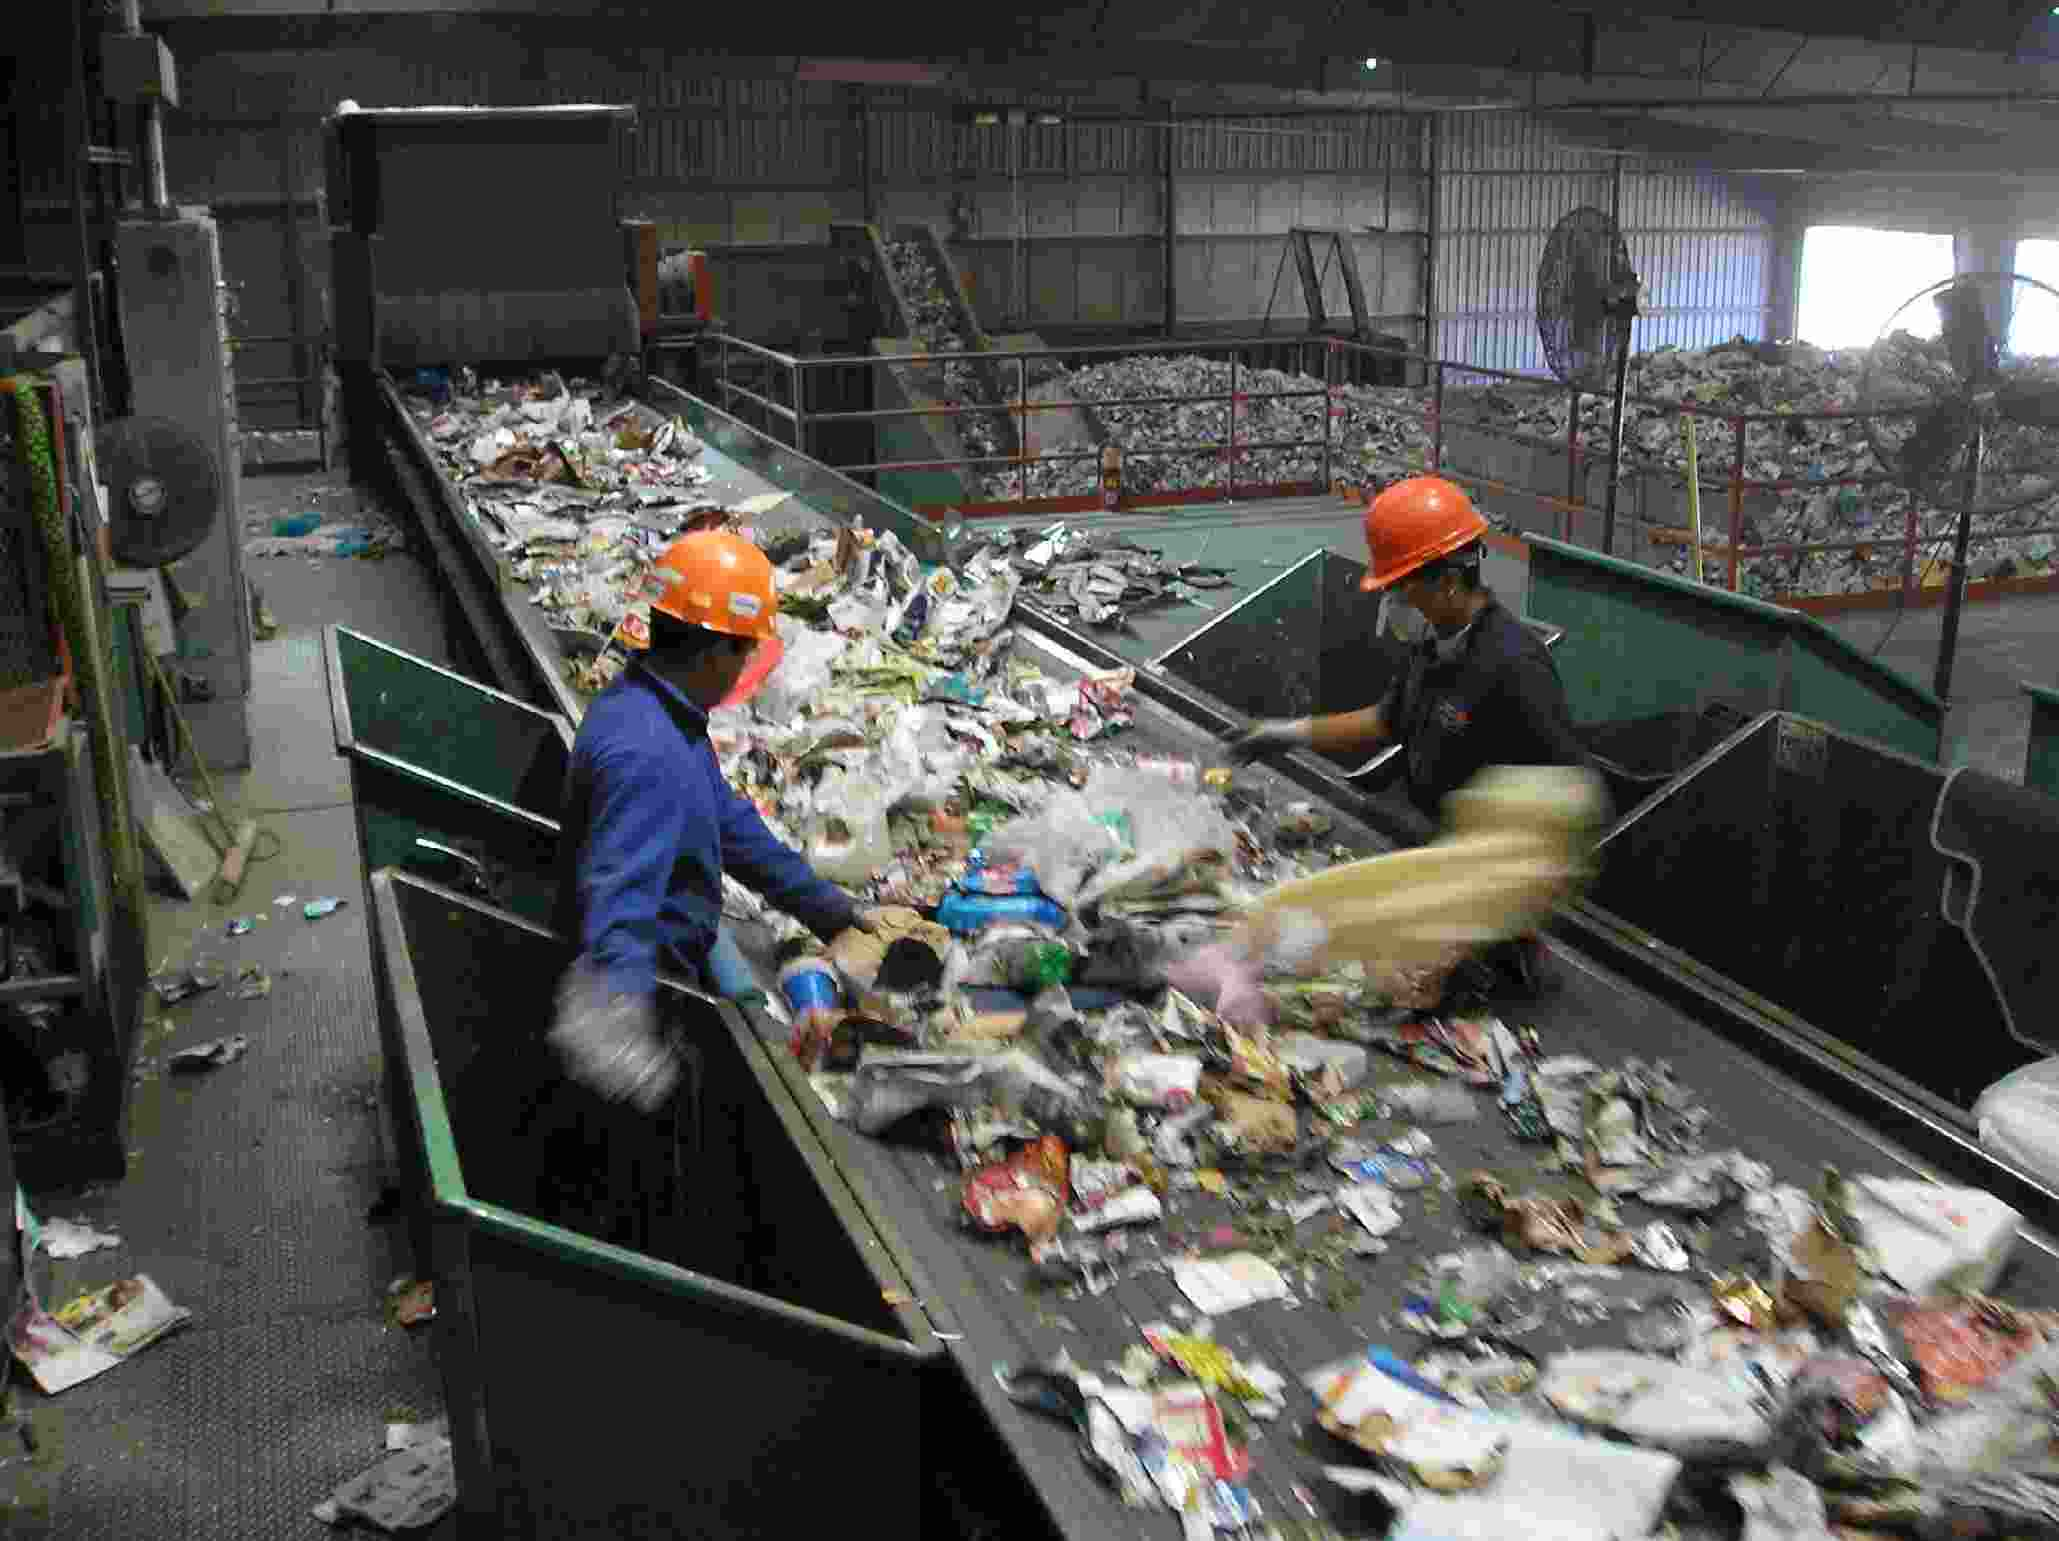 Alarm System Effective Waste Segregation And Management A Dire